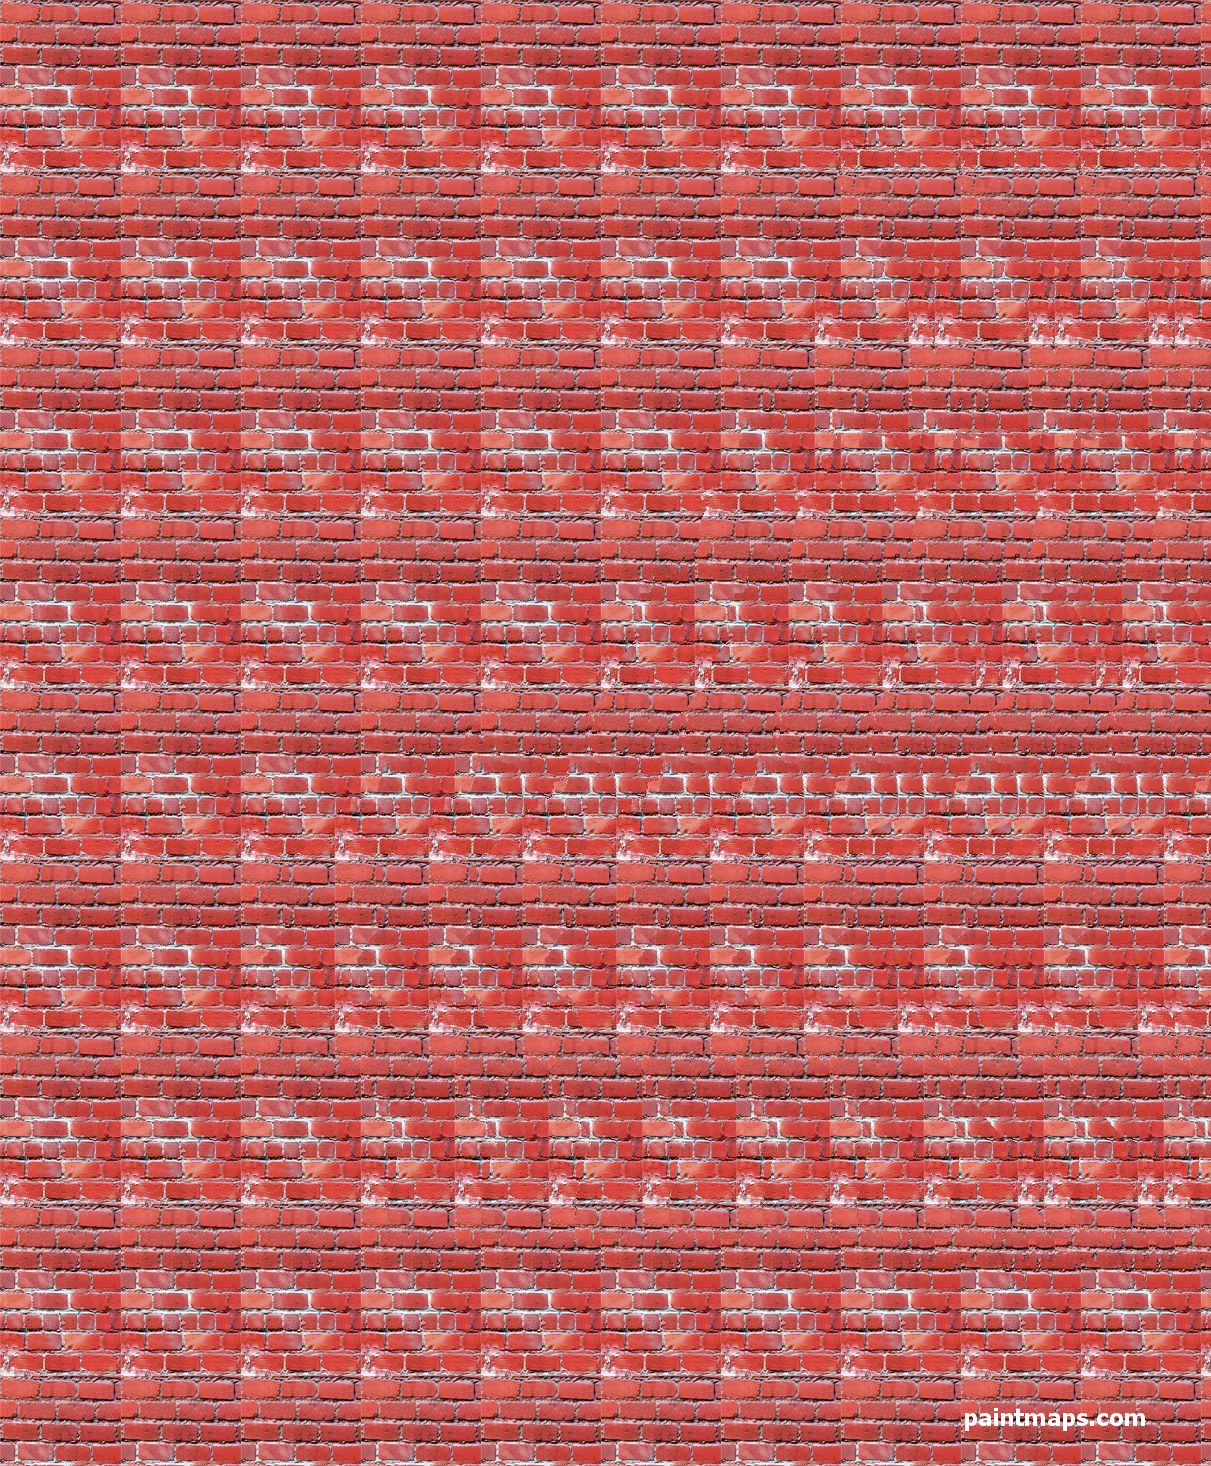 CAMEROON Map in 3D Stereogram (Magic Eye)